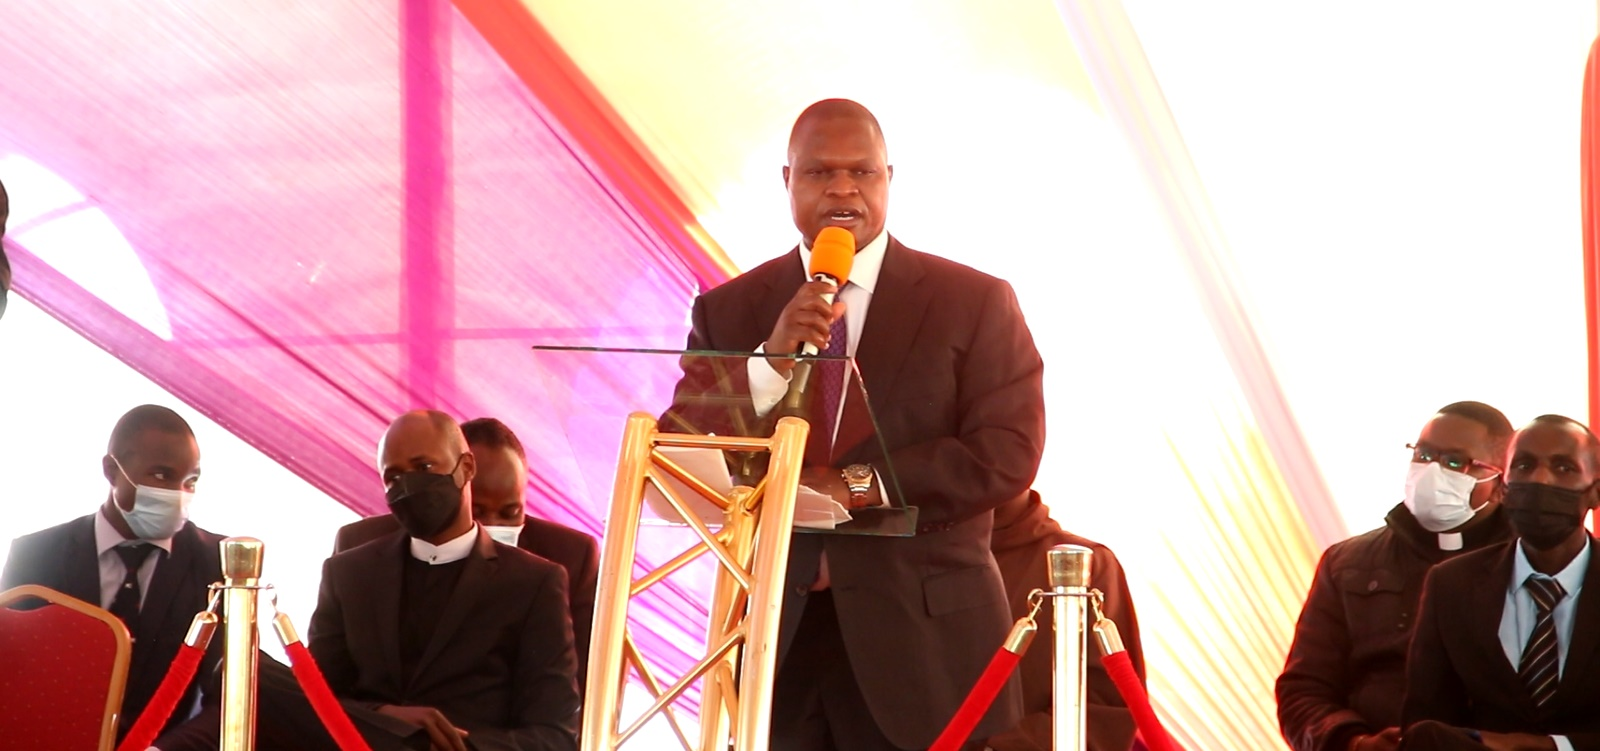 Kisii Deputy Governor Joash Maangi addressing Mourners at the Burial of Timothy Bosire's Wife in Nyamira County. Photo/Rogers